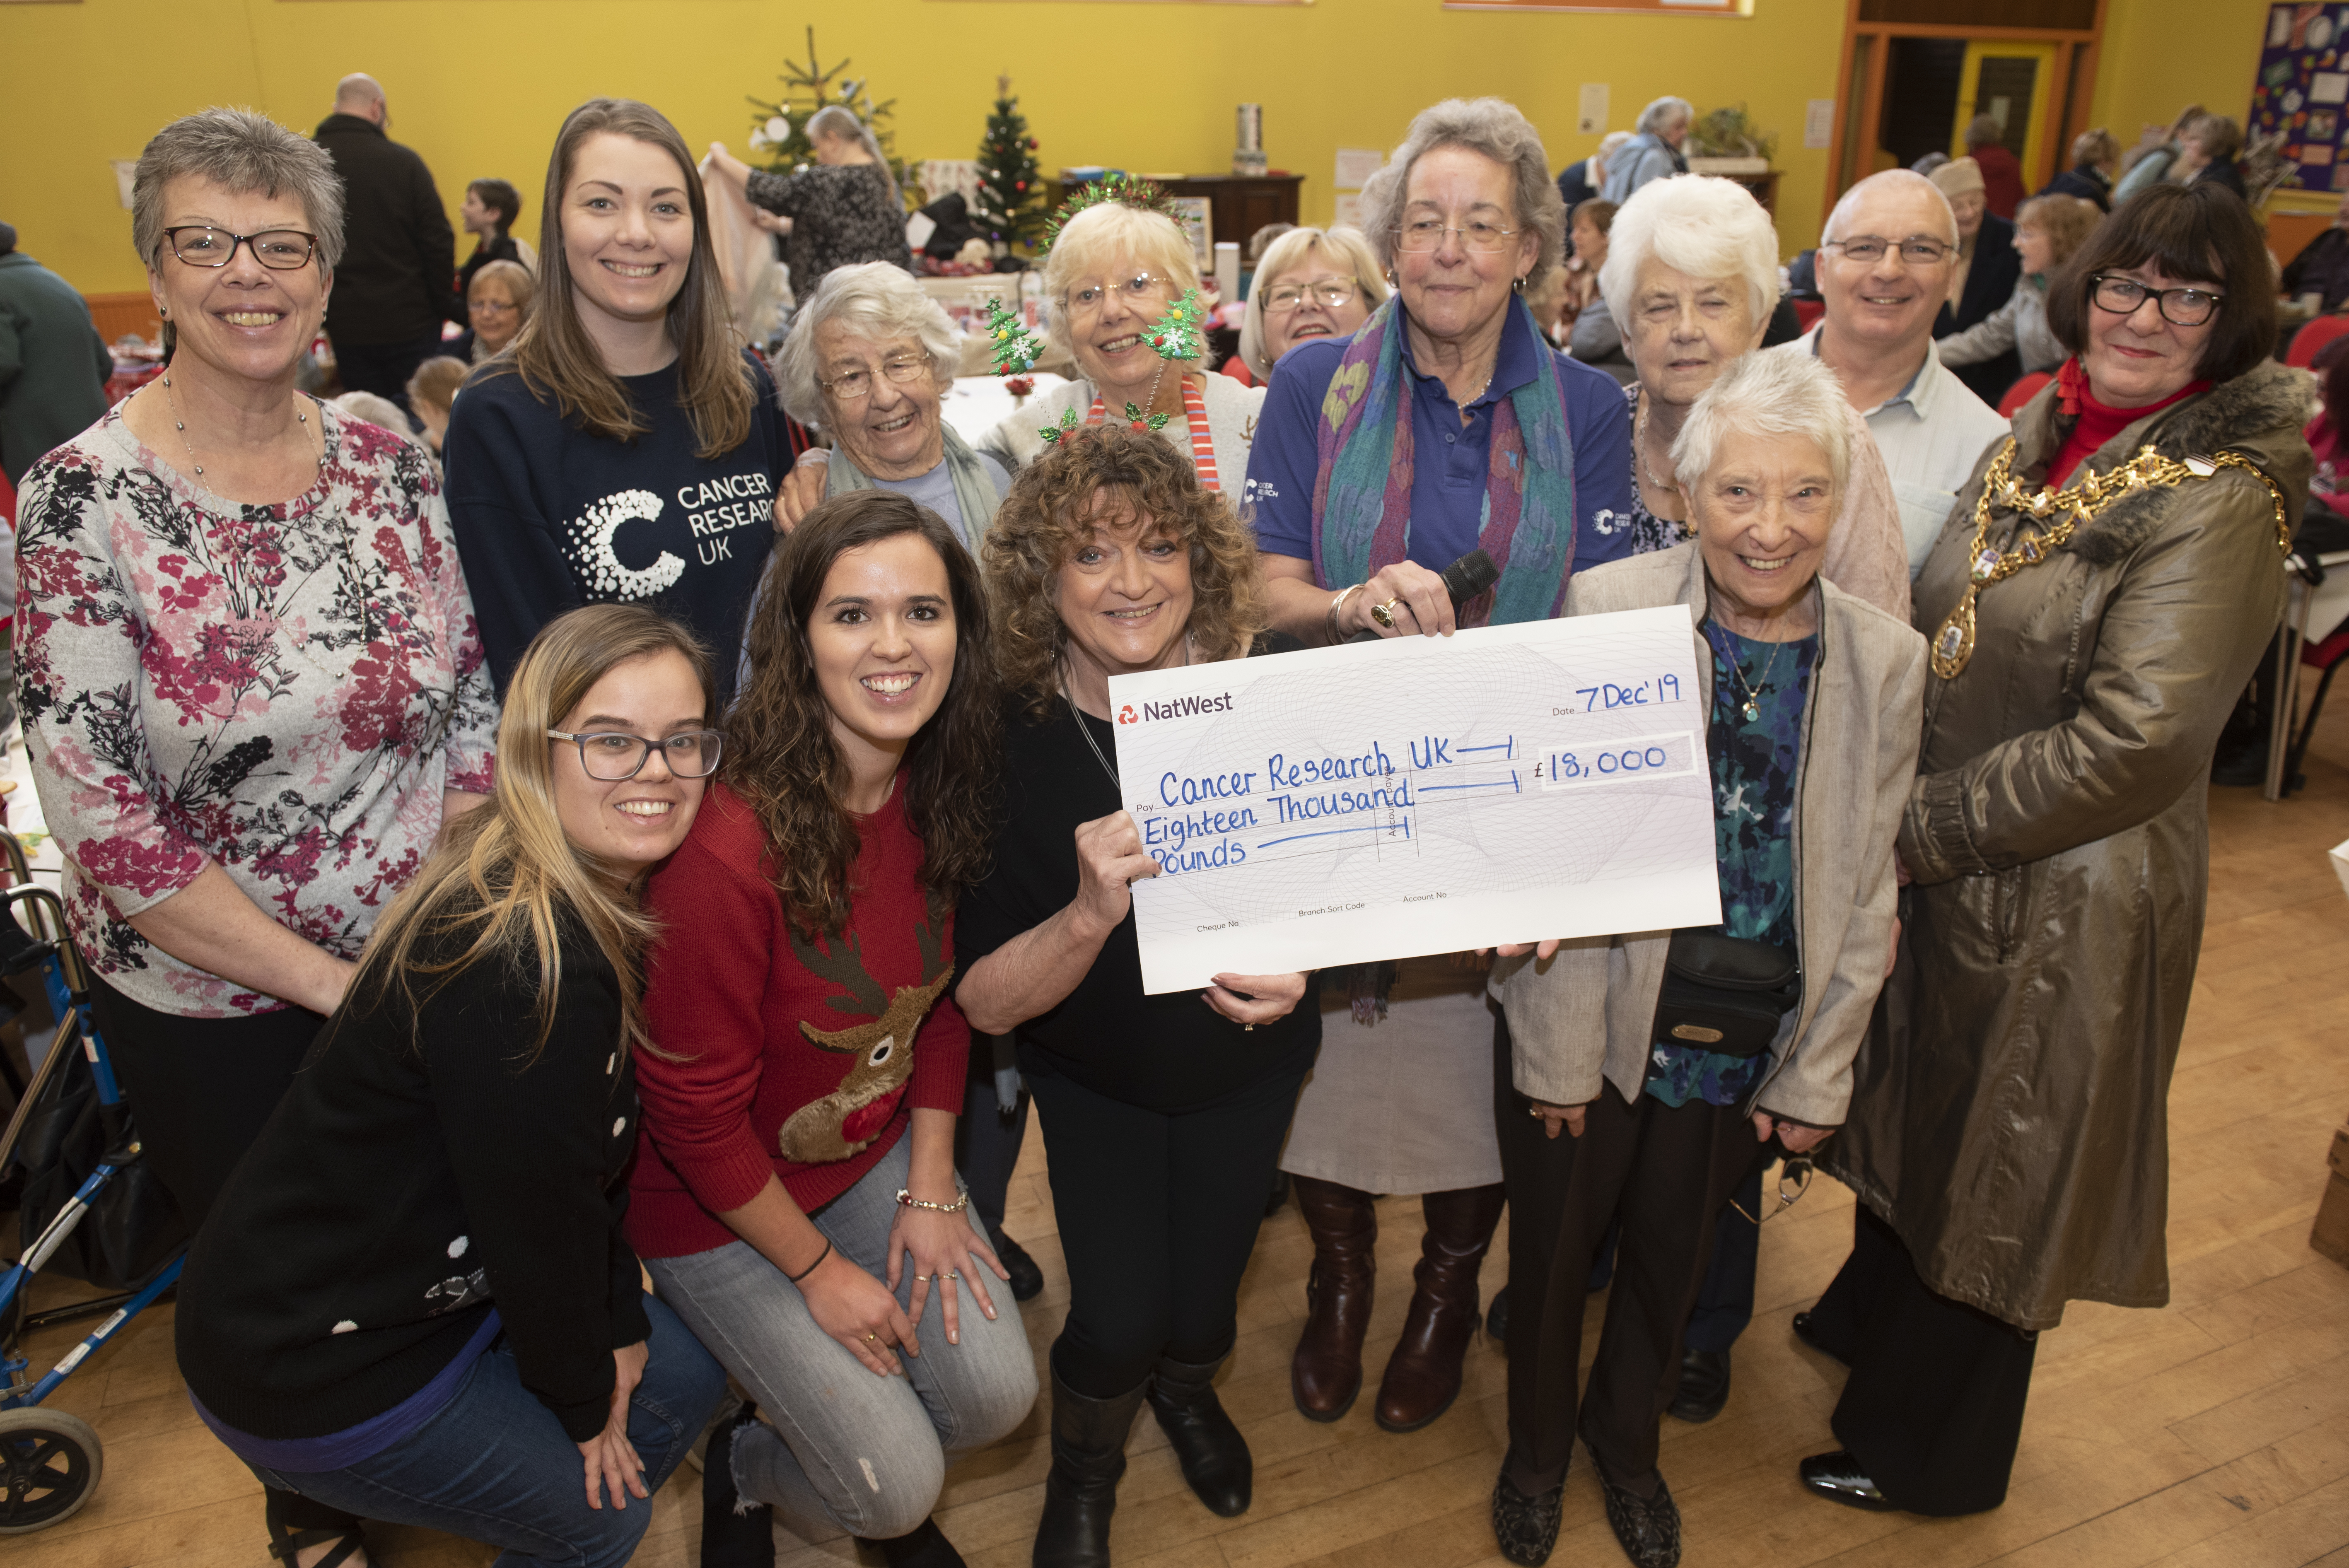 BACUP LOCAL COMMITTEE FUNDRAISE £18,000